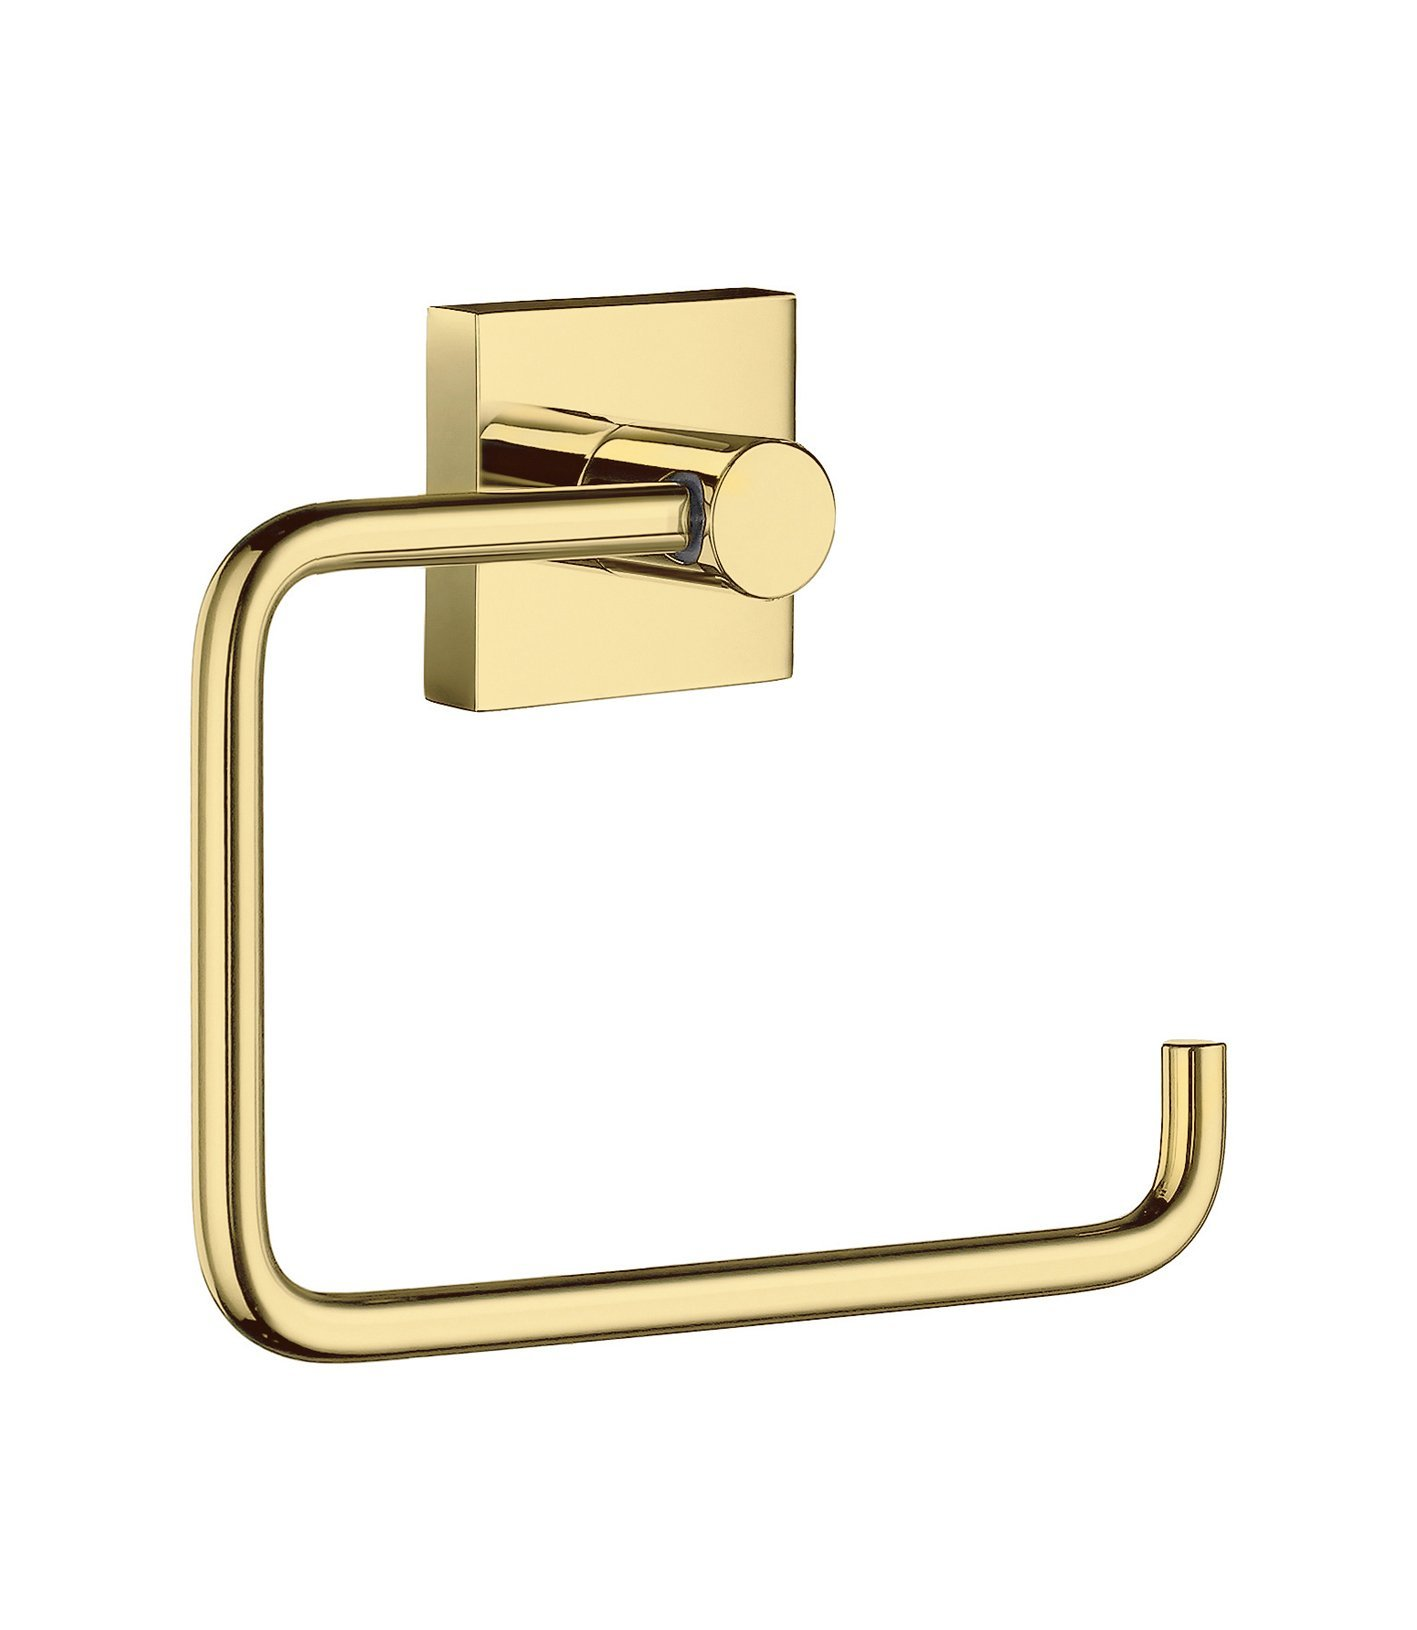 Smedbo SME_RV341 Toilet Roll Euro Holder Without Lid, Polished Brass